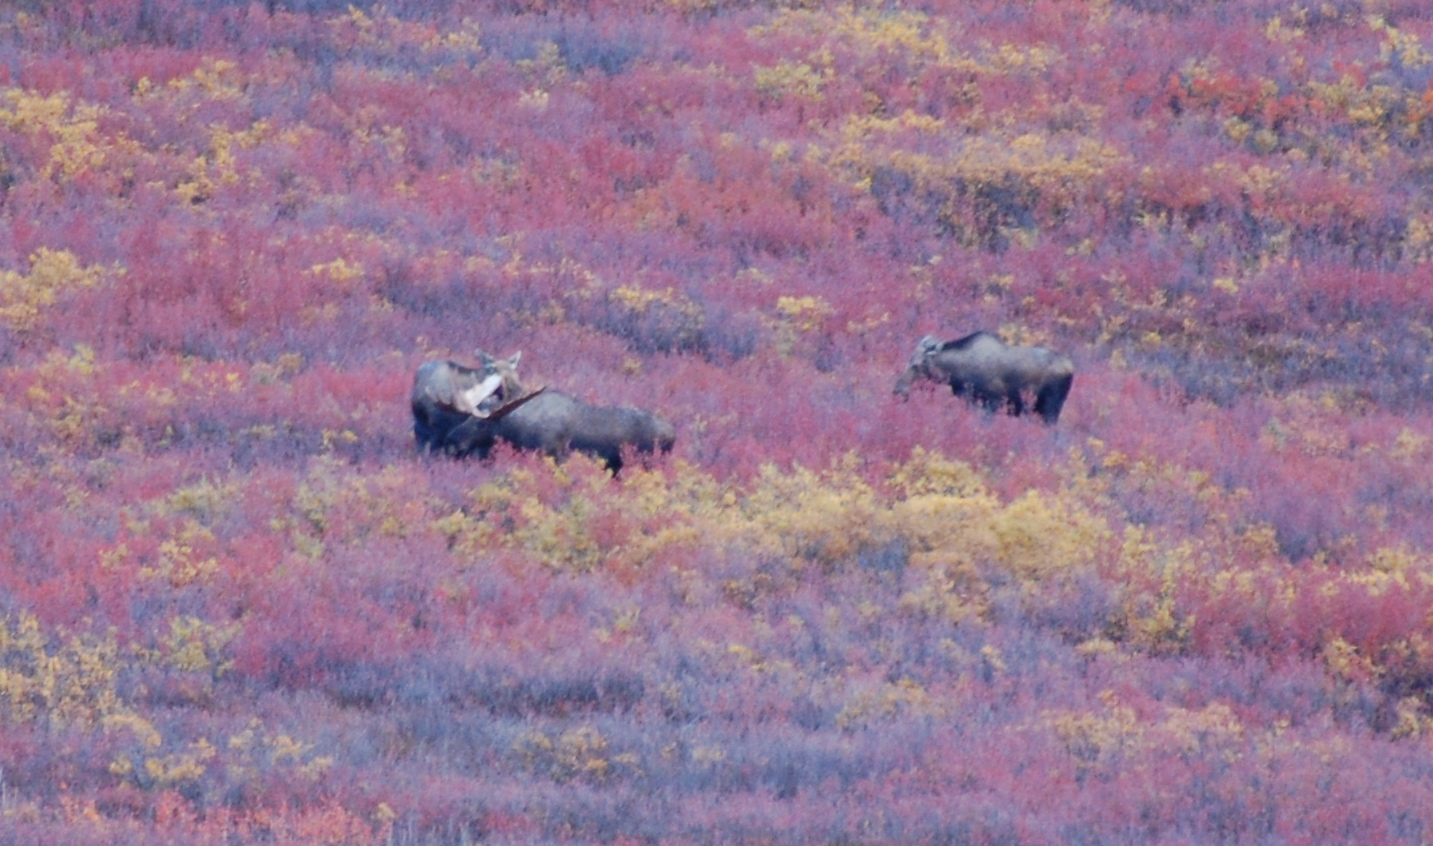 Another male moose with 2 females already in tow